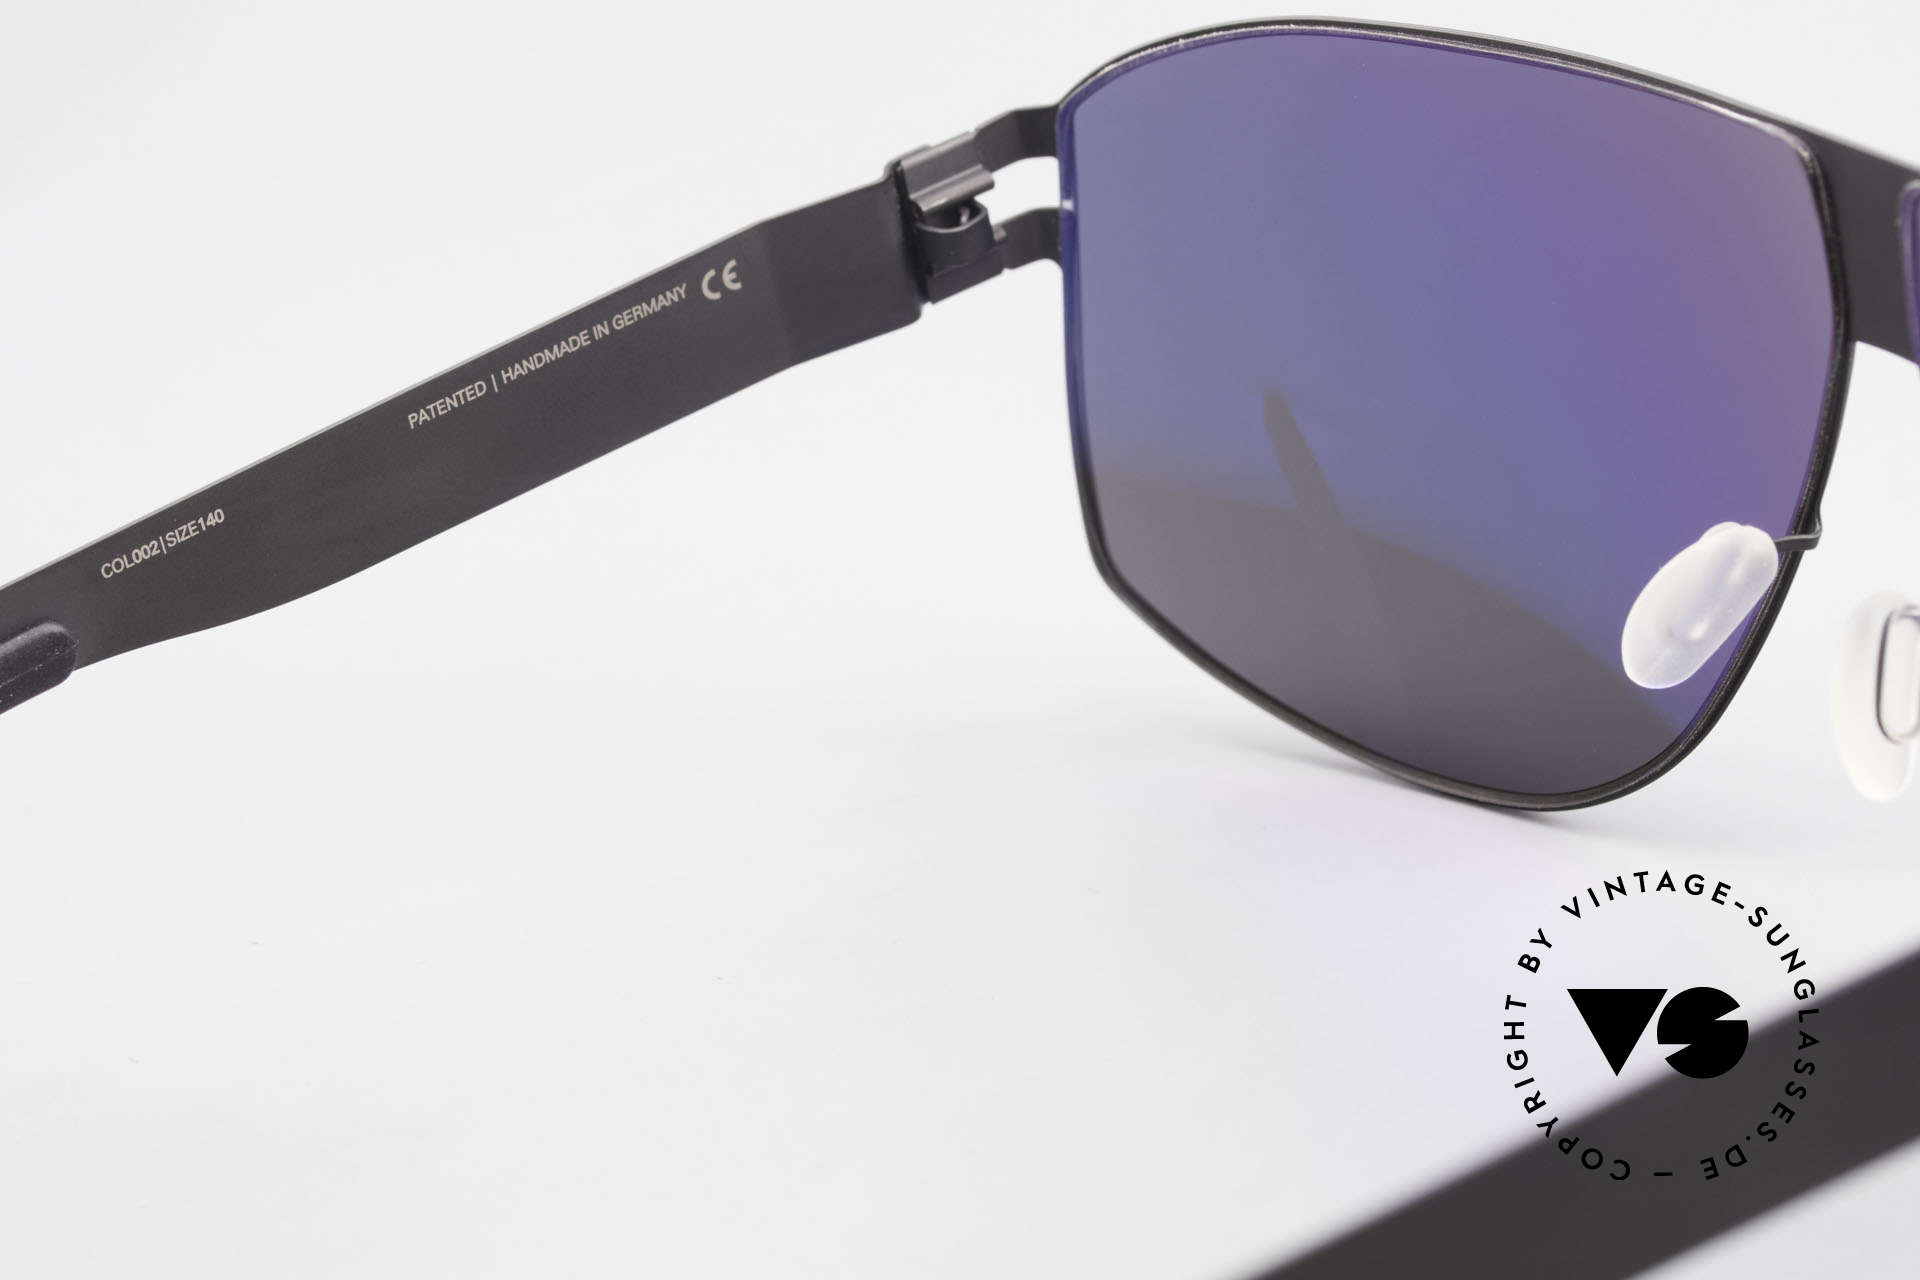 Mykita Terrence Vintage Mykita Sunglasses 2011, worn by many celebs (rare & in high demand, meanwhile), Made for Men